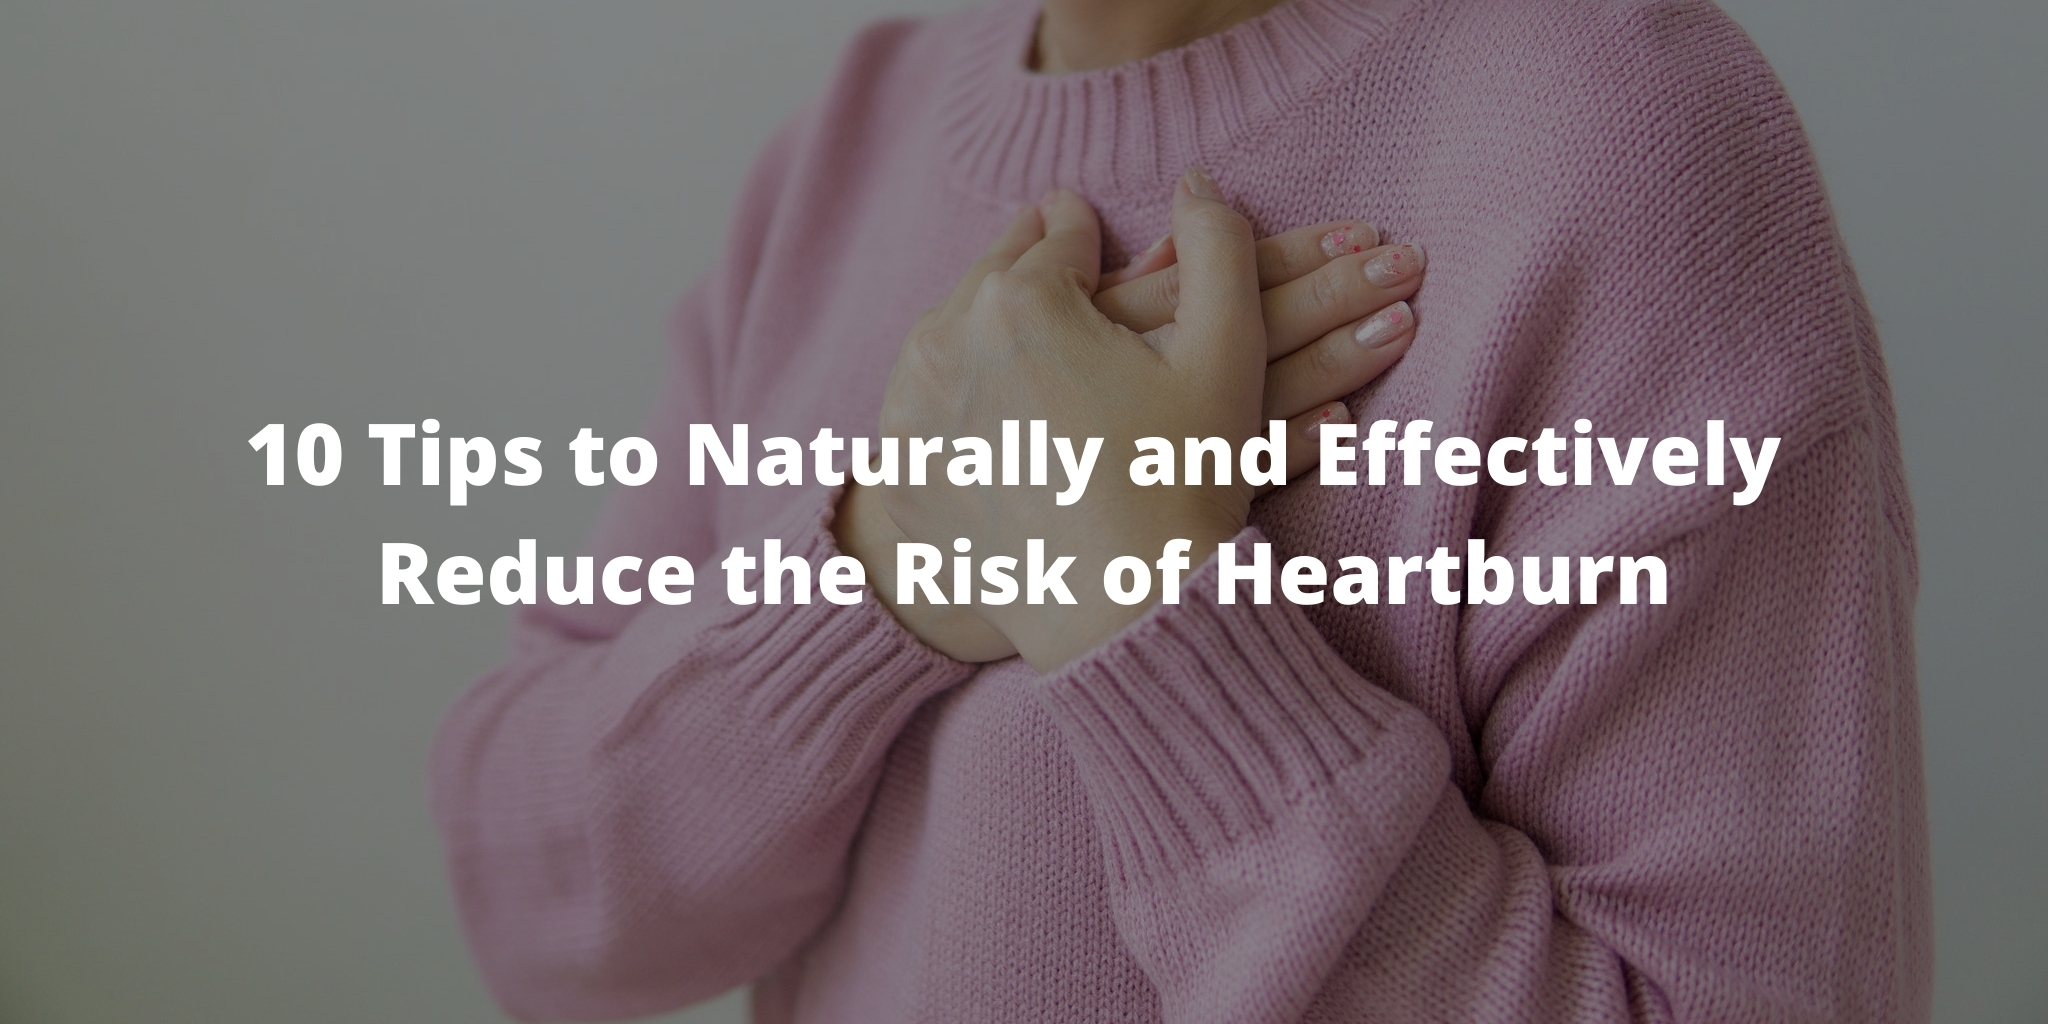 10 Tips to Naturally and Effectively Reduce the Risk of Heartburn